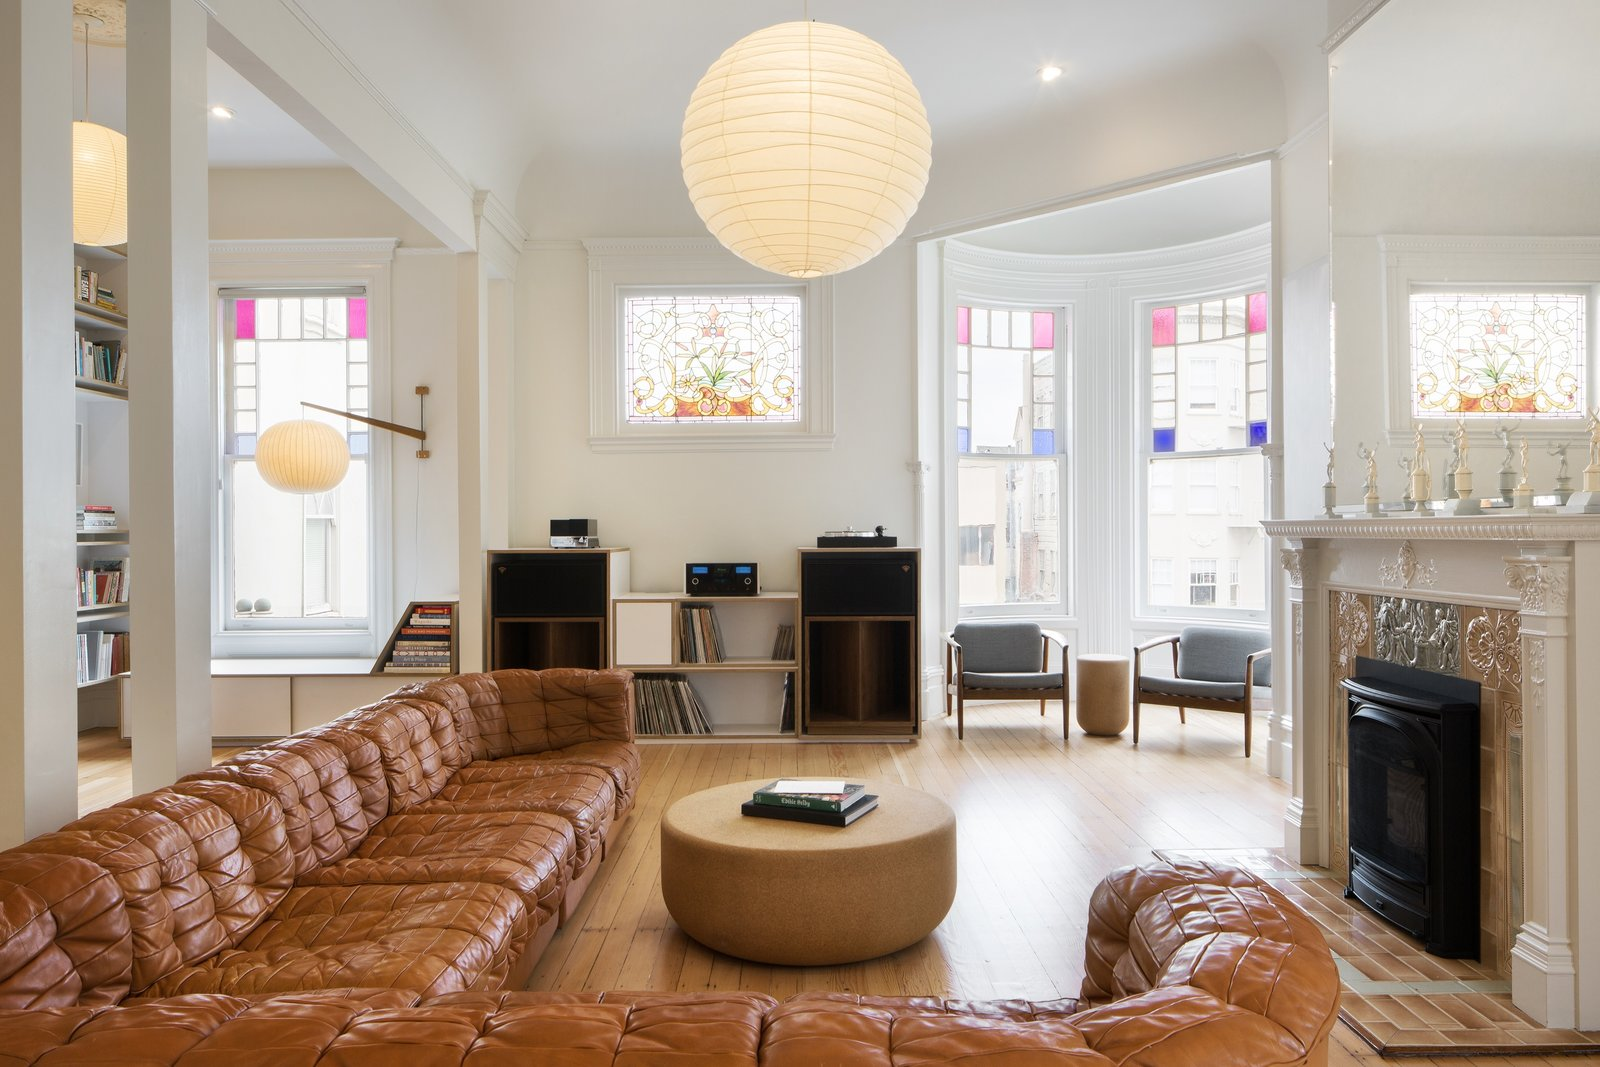 The 1894 Queen Anne Victorian features an open floor plan that juxtaposes classic original features with cool modern elements—many of which are customized for the home.